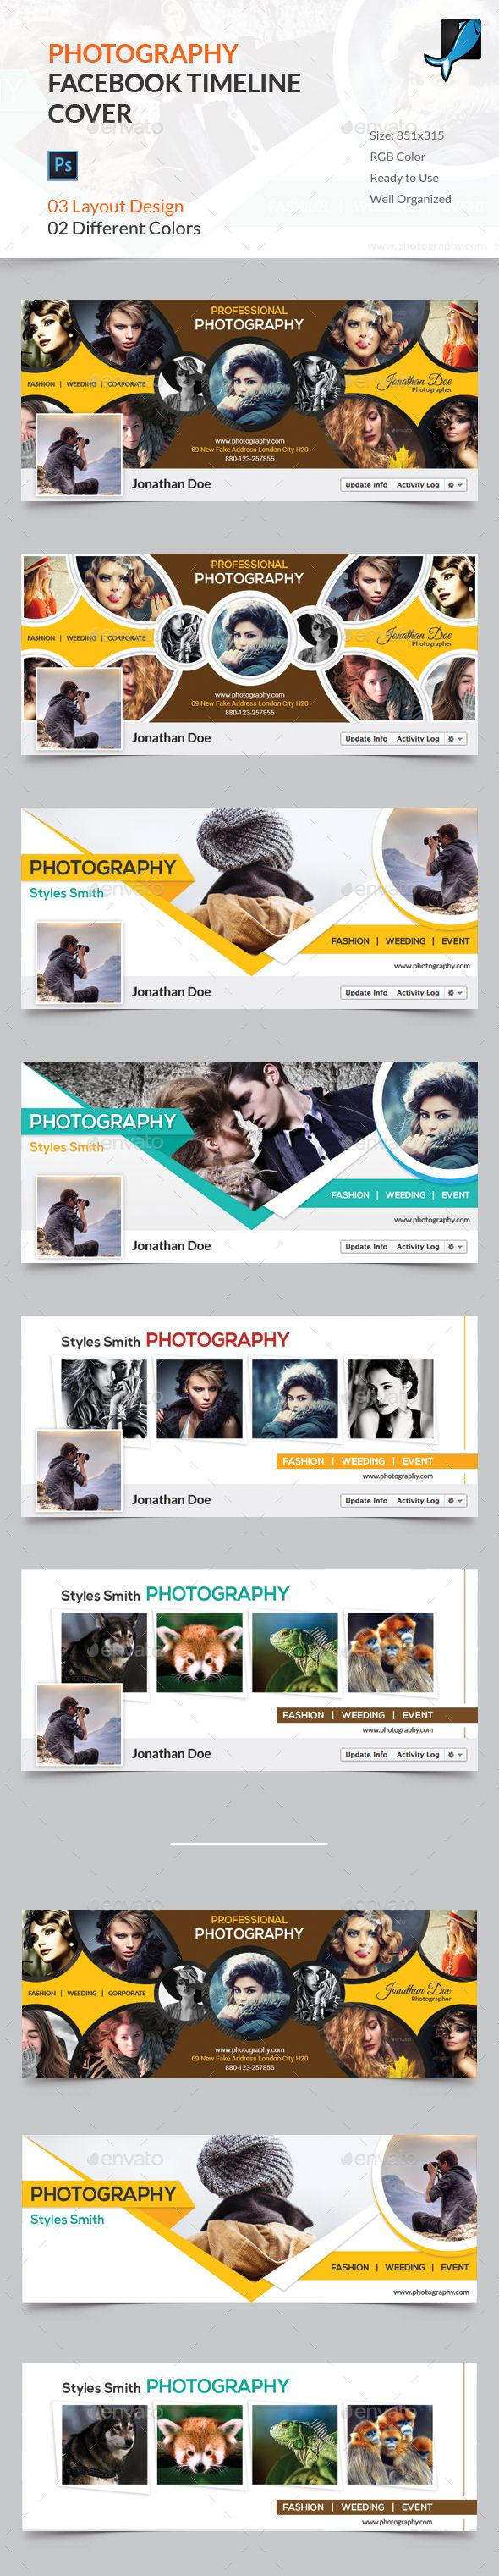 Photography Facebook Timeline Cover Template PSD. Download here: http://graphicriver.net/item/photography-facebook-timeline-cover/15956537?ref=ksioks